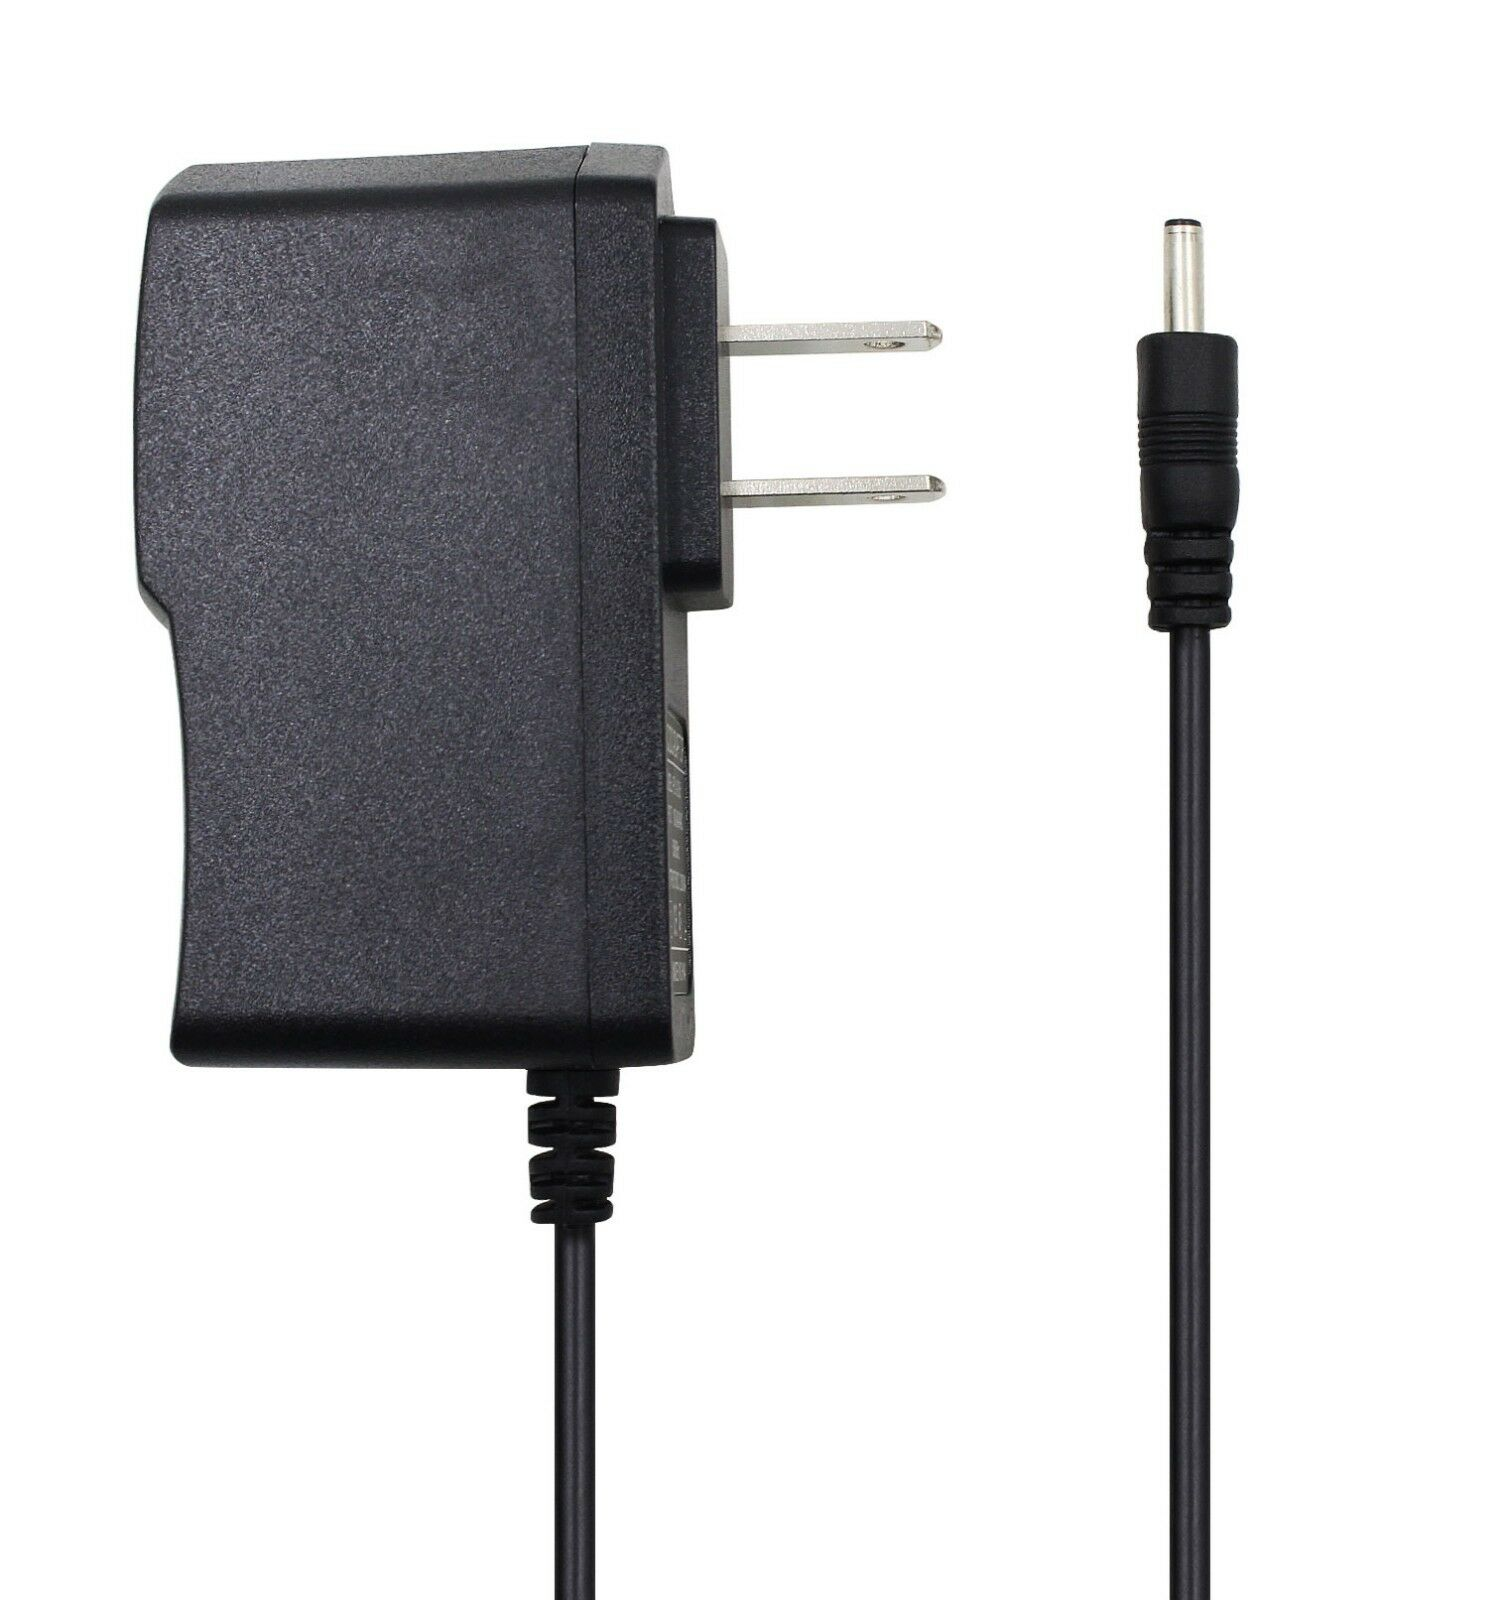 AC/DC POWER SUPPLY Adapter Charger Cord For GiiNii GN-818 Digital ...